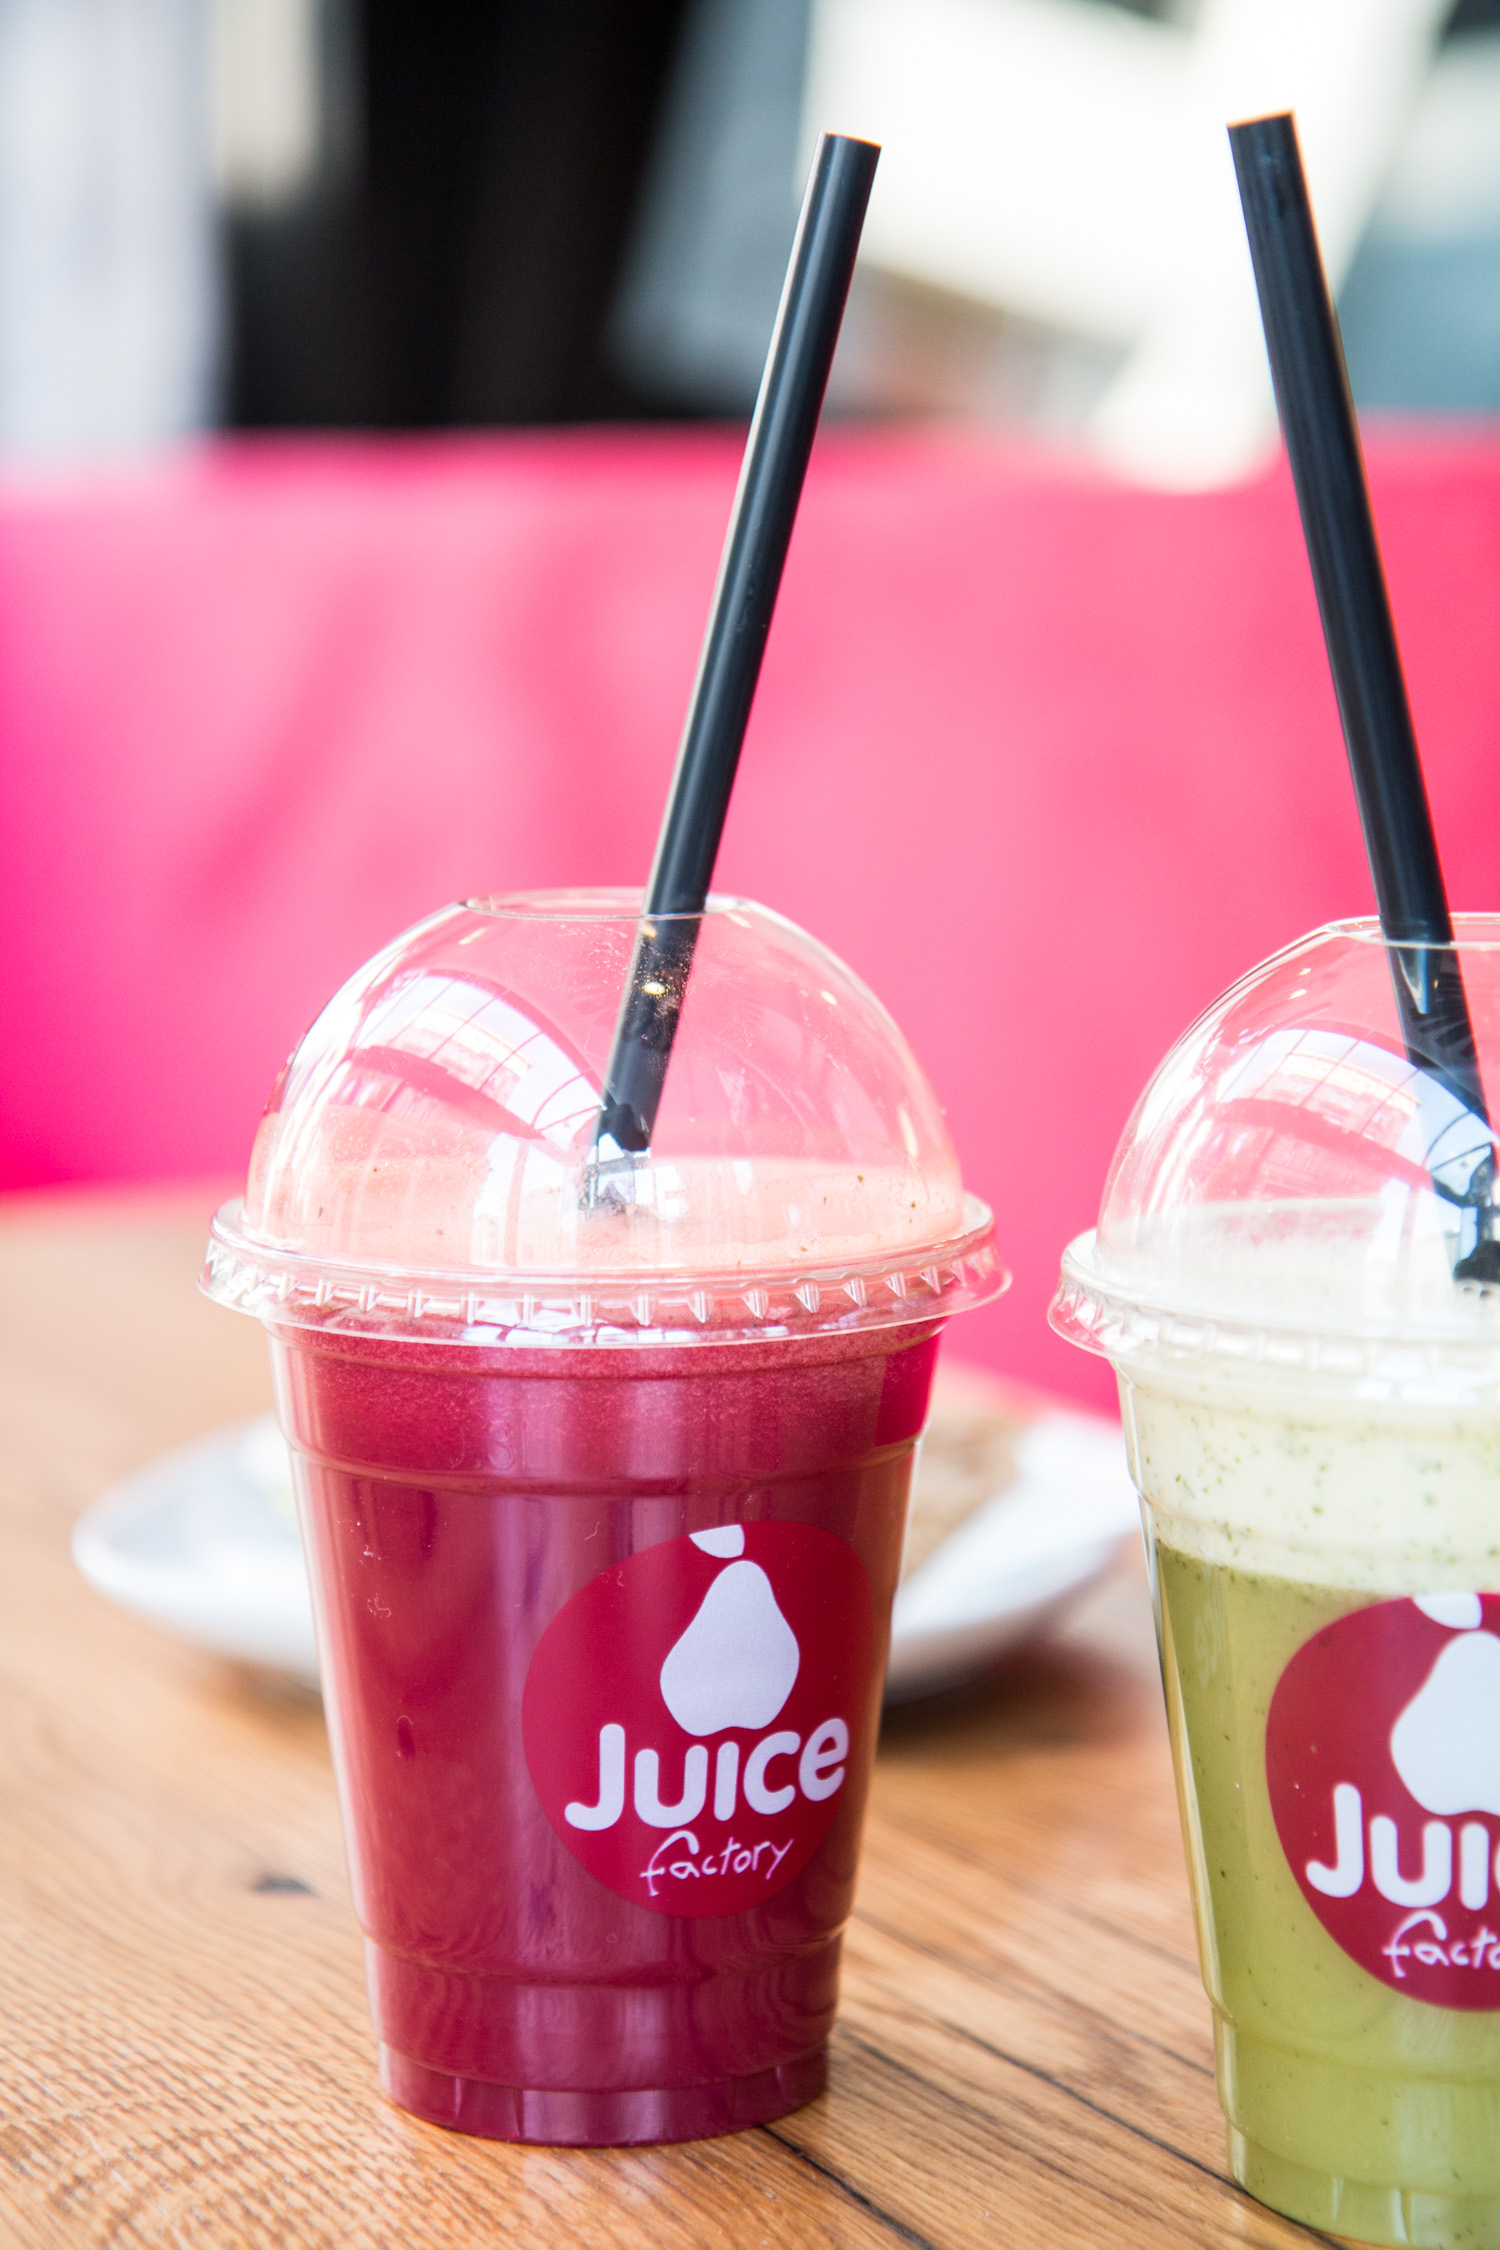 Juice Factory Vienna | The Daily Dose